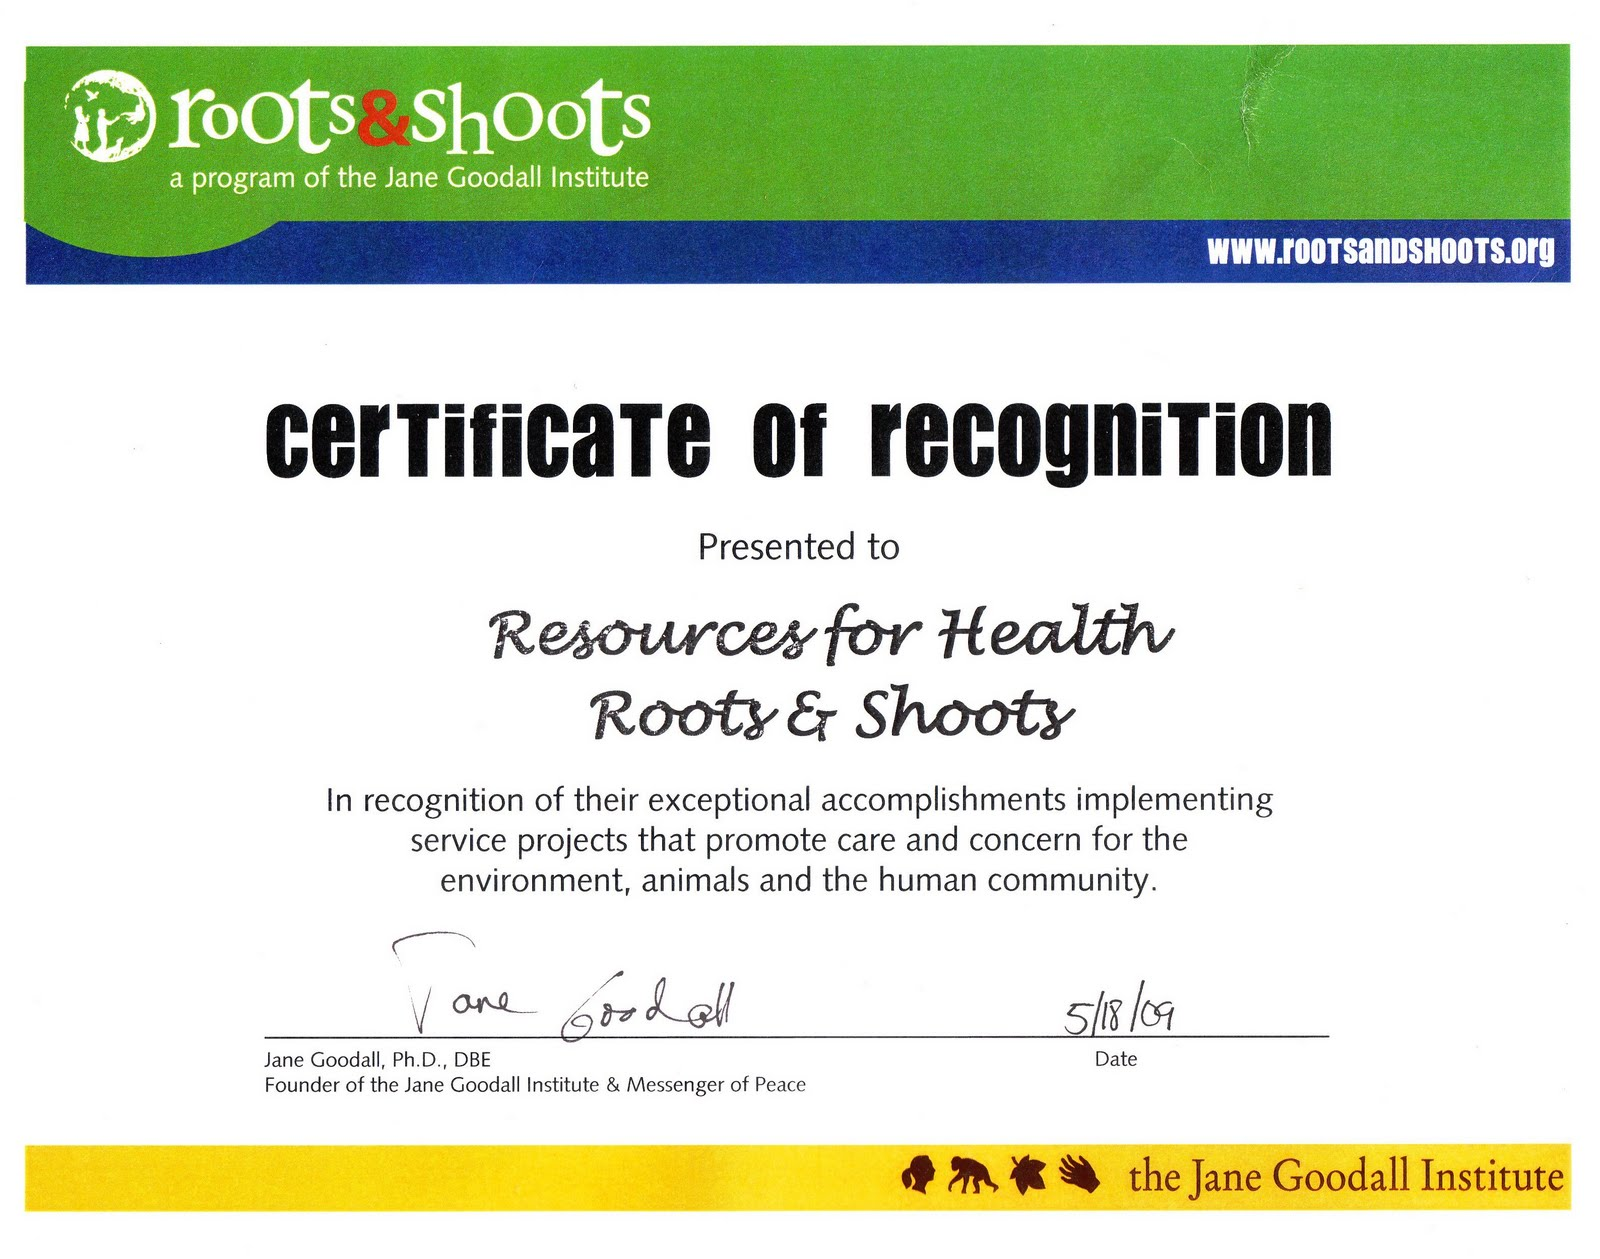 Doc1012786 Examples of Certificates of Appreciation Wording – Certificate of Appreciation Wording Examples